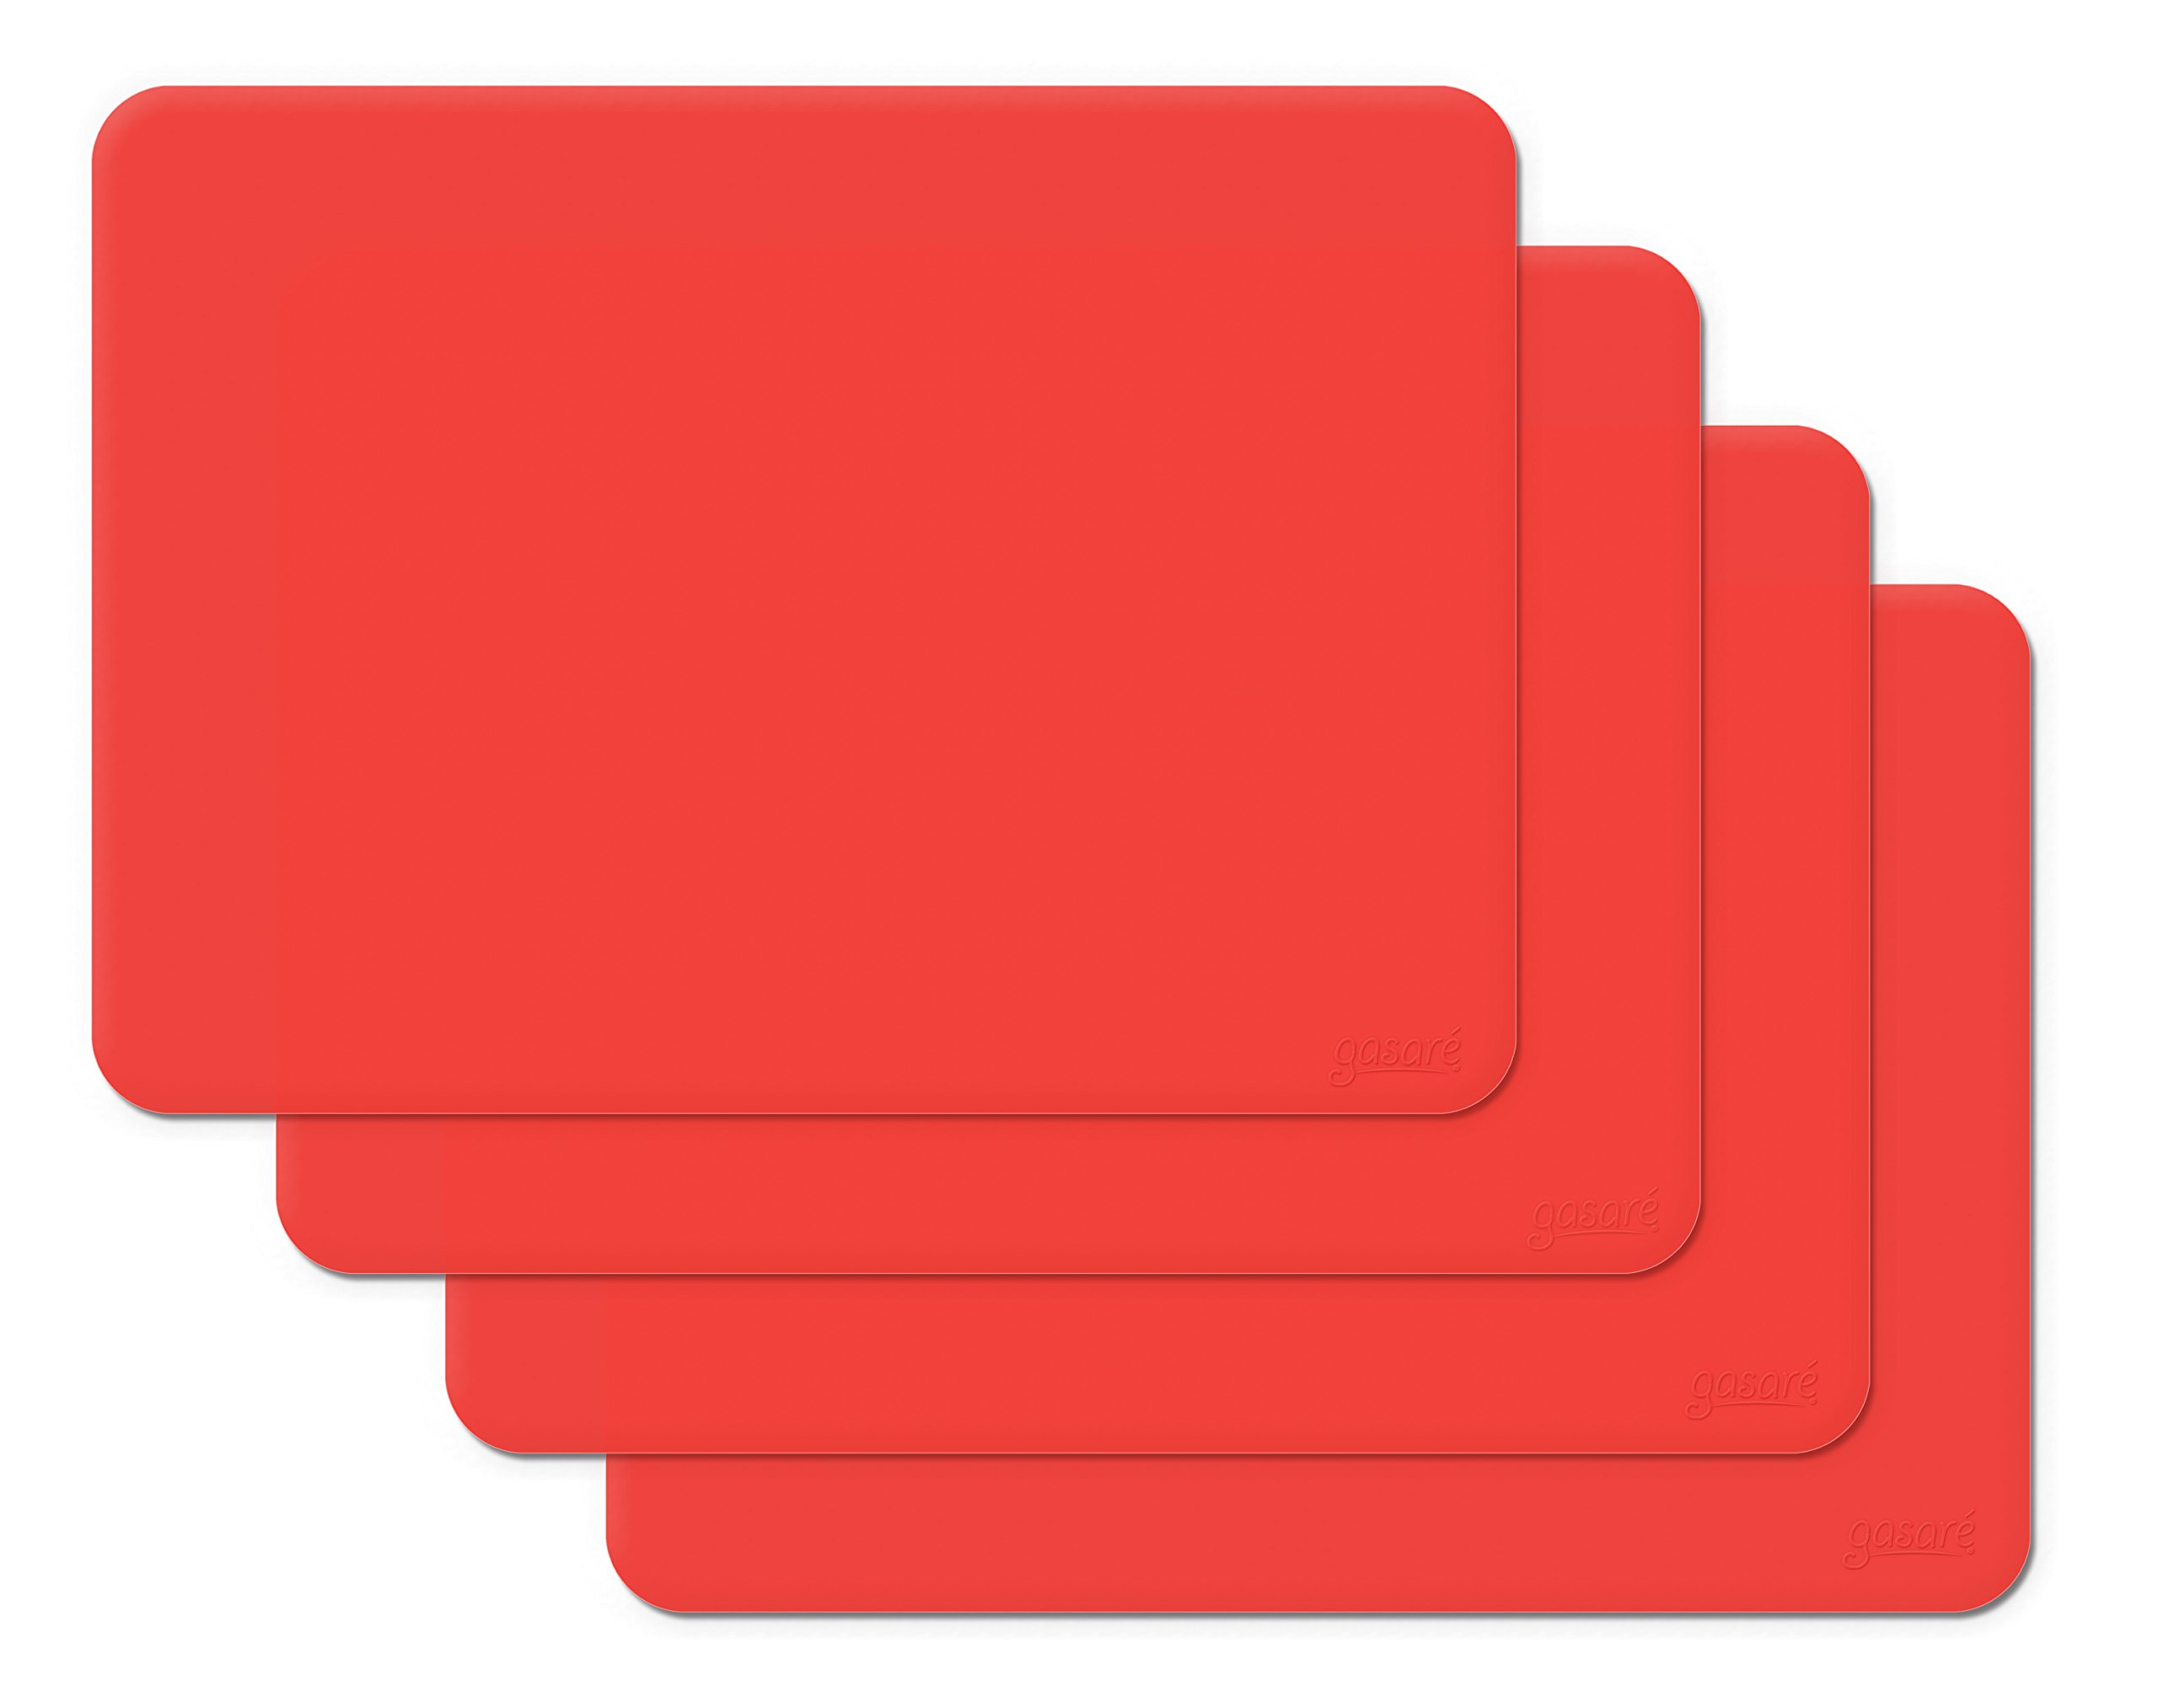 Gasare, Silicone Placemats, Kids Placemats, Non-slip Waterproof, Very Flexible Silicone, Assorted Colors, Size 16 x 12 Inches, Set of 4,Red